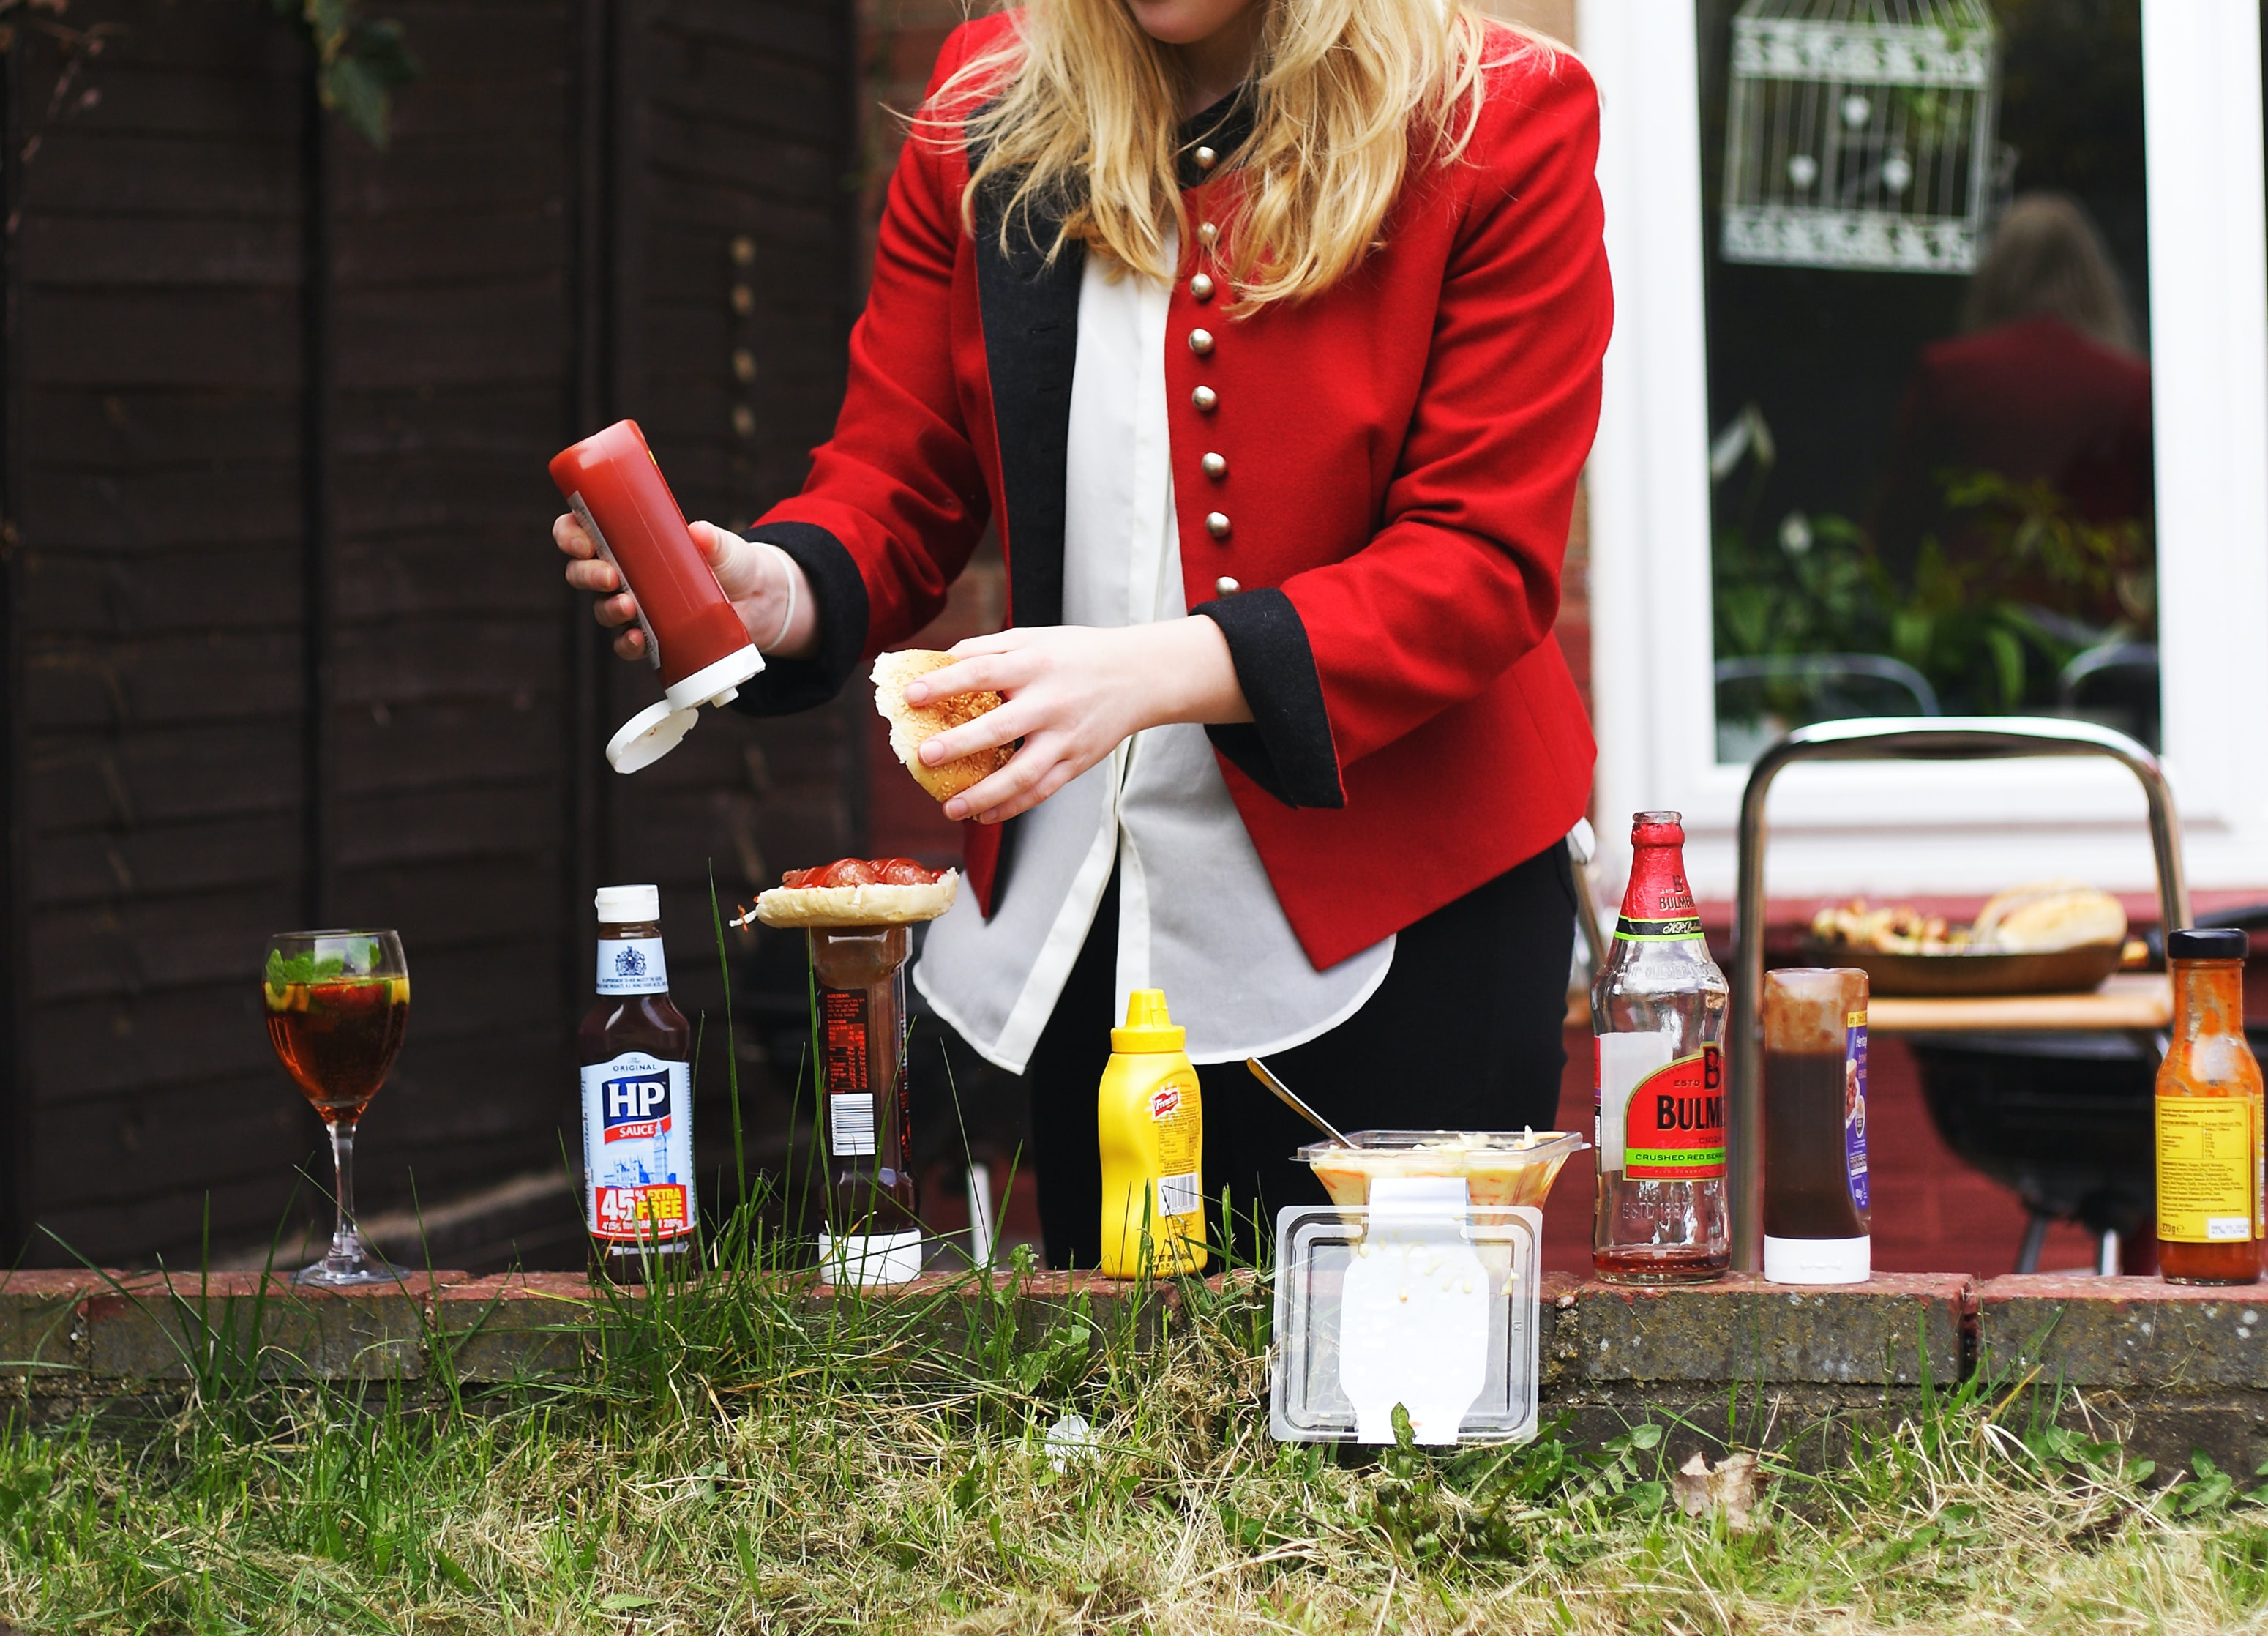 Woman in a red jacket putting ketchup on a hamburger